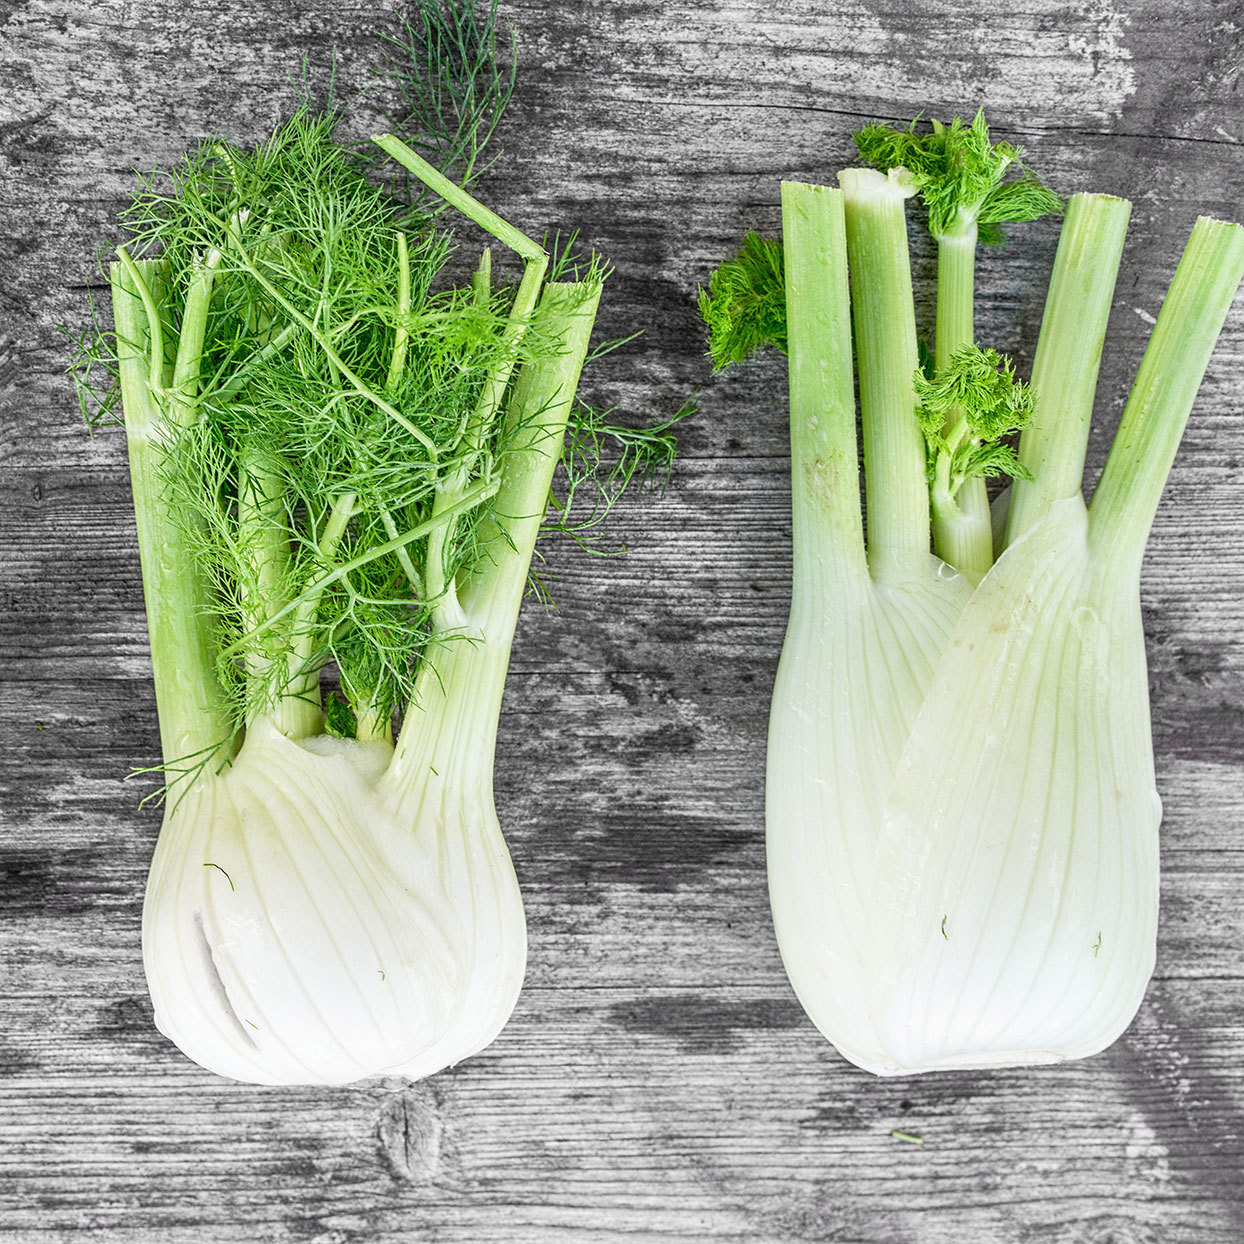 What Is Fennel and How Can I Use It?